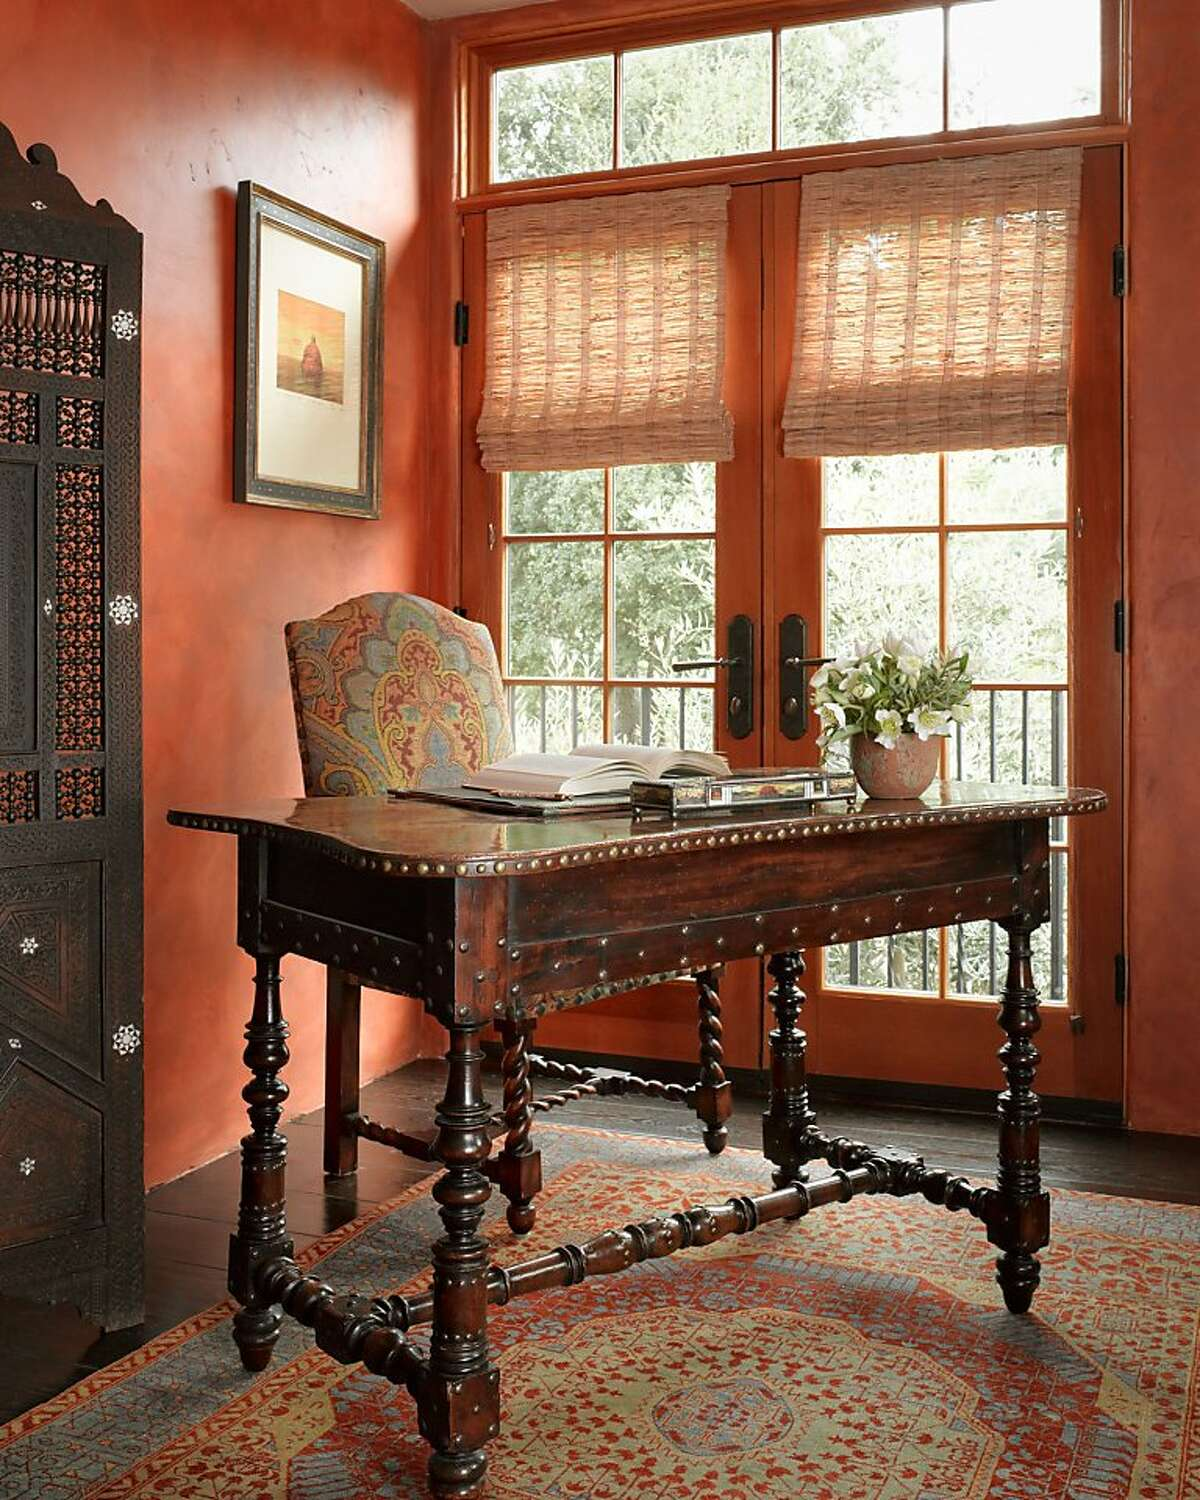 An 18th Century Italian Walnut Writing Table, a Catherine Macfee favorite.